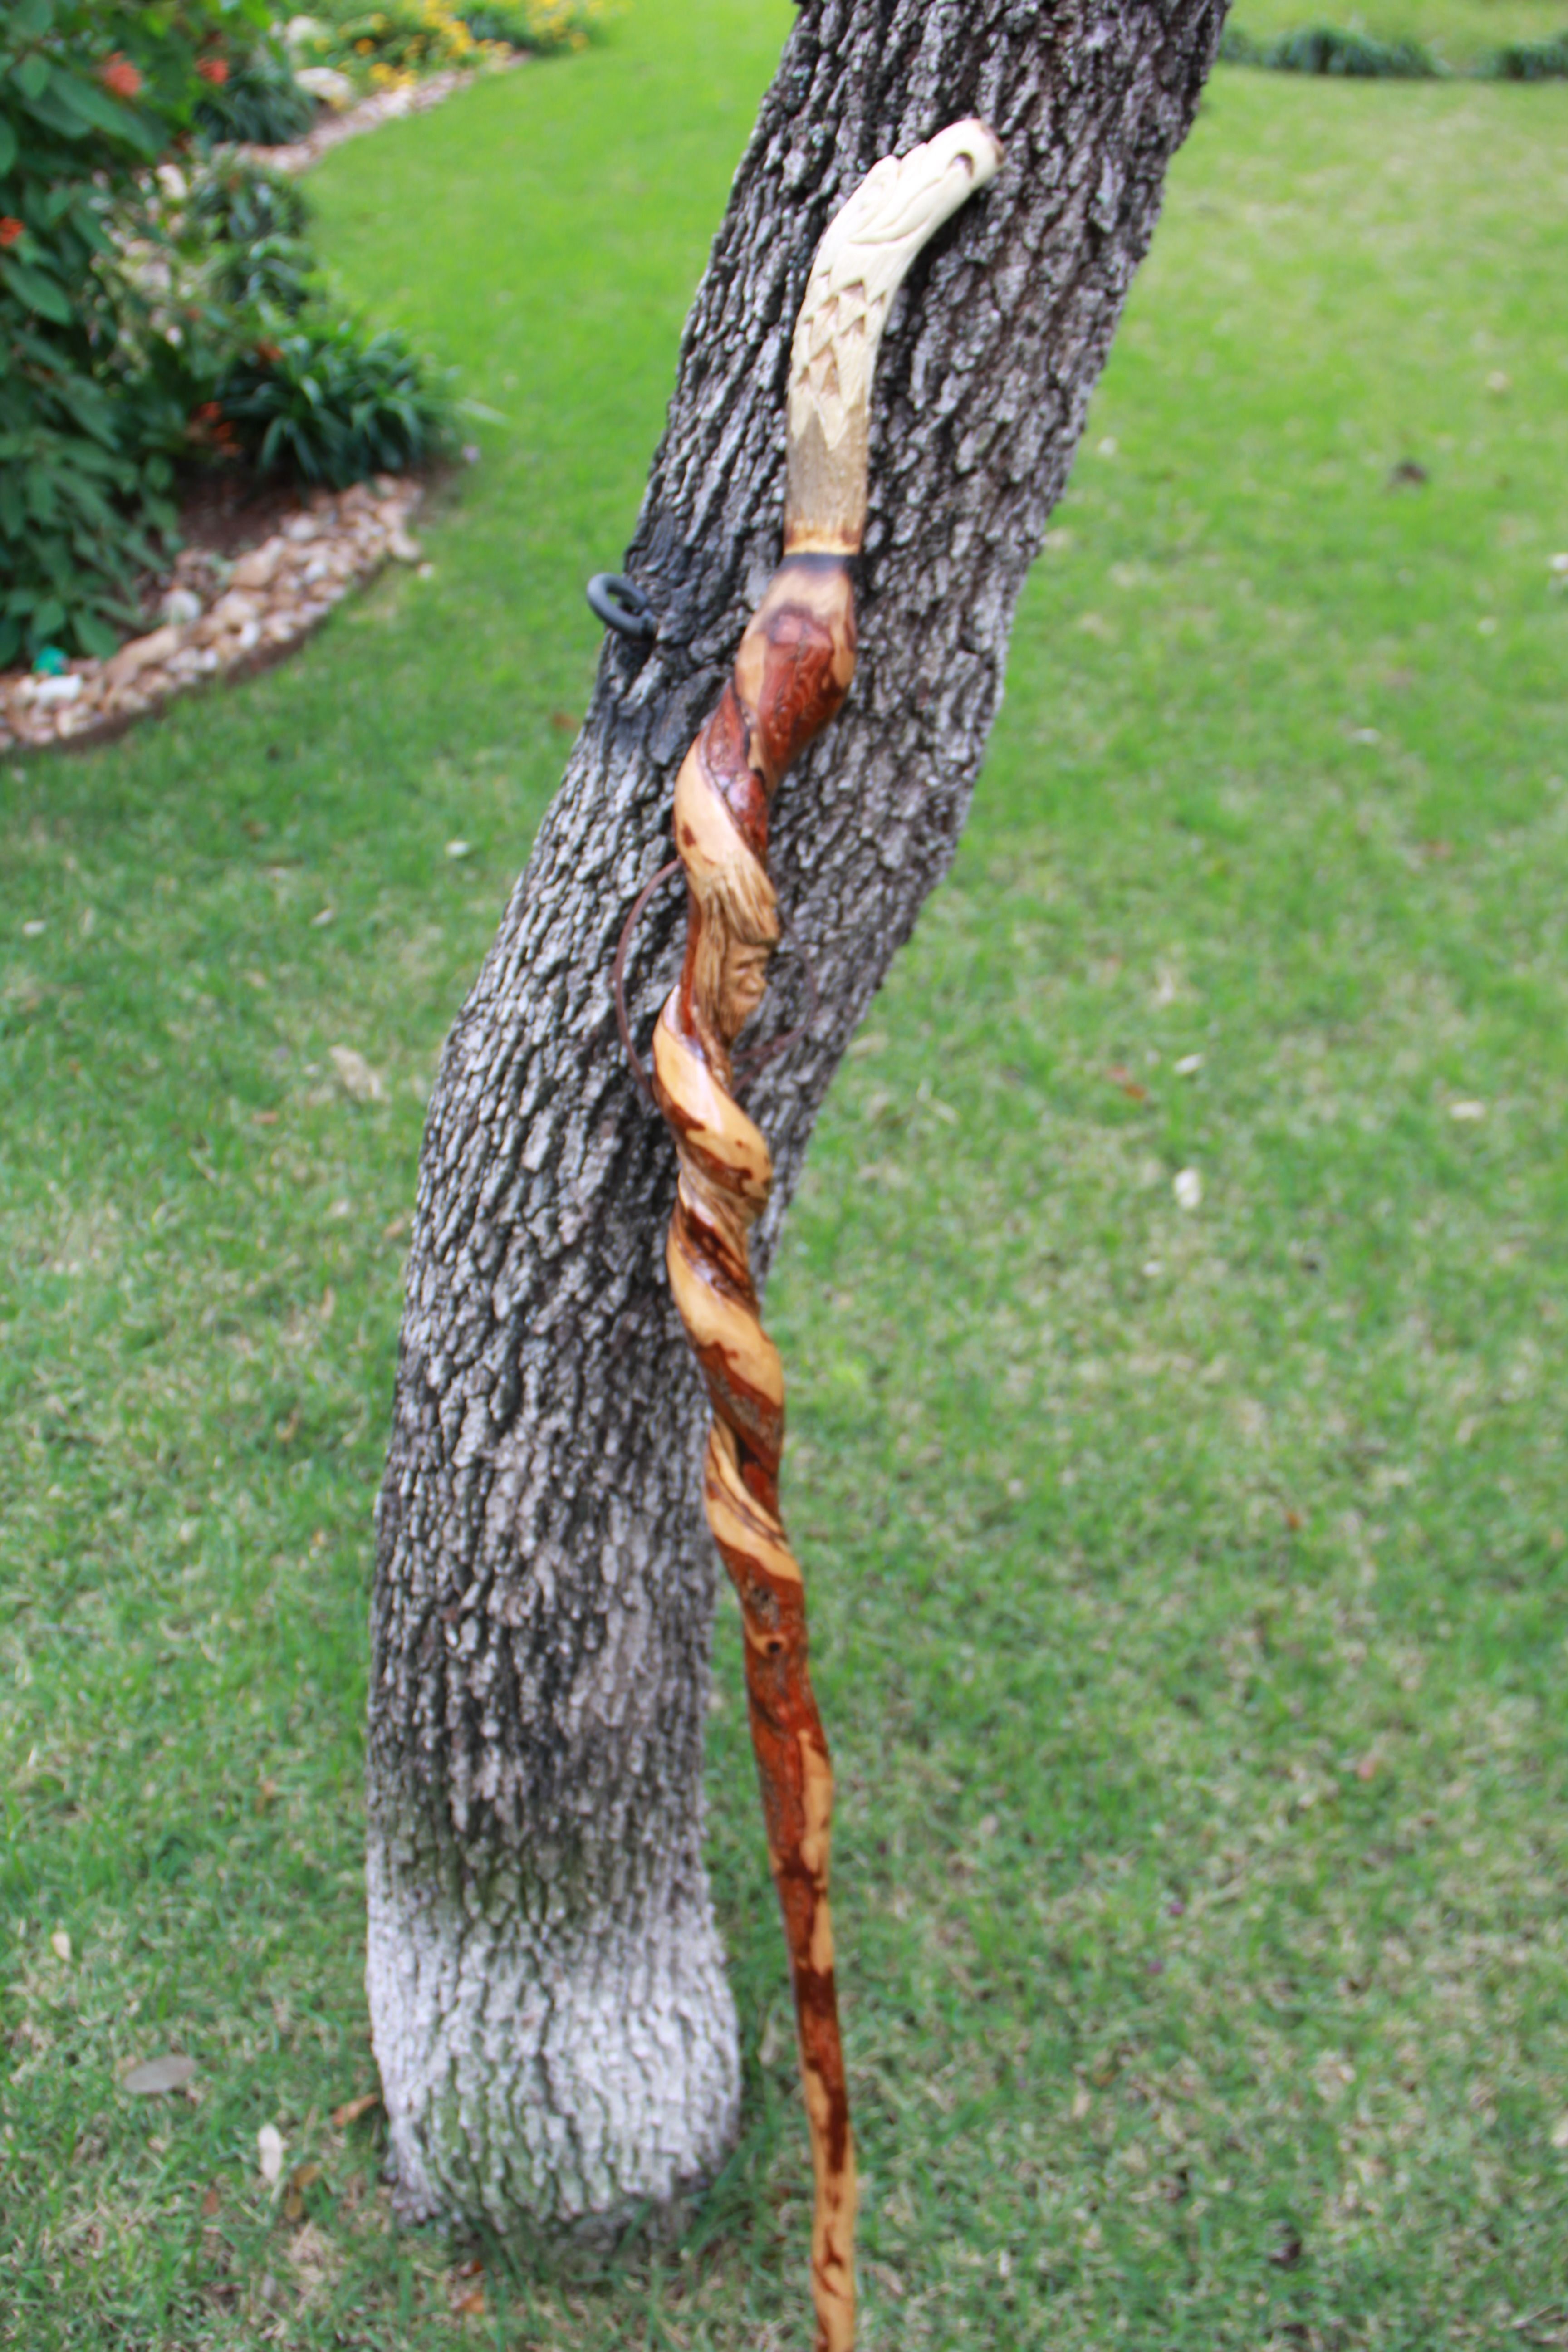 A twisted walking stick with hand carved eagles head out of deer antler.  I met a guy that carves the animals out of antler and used one that he made.